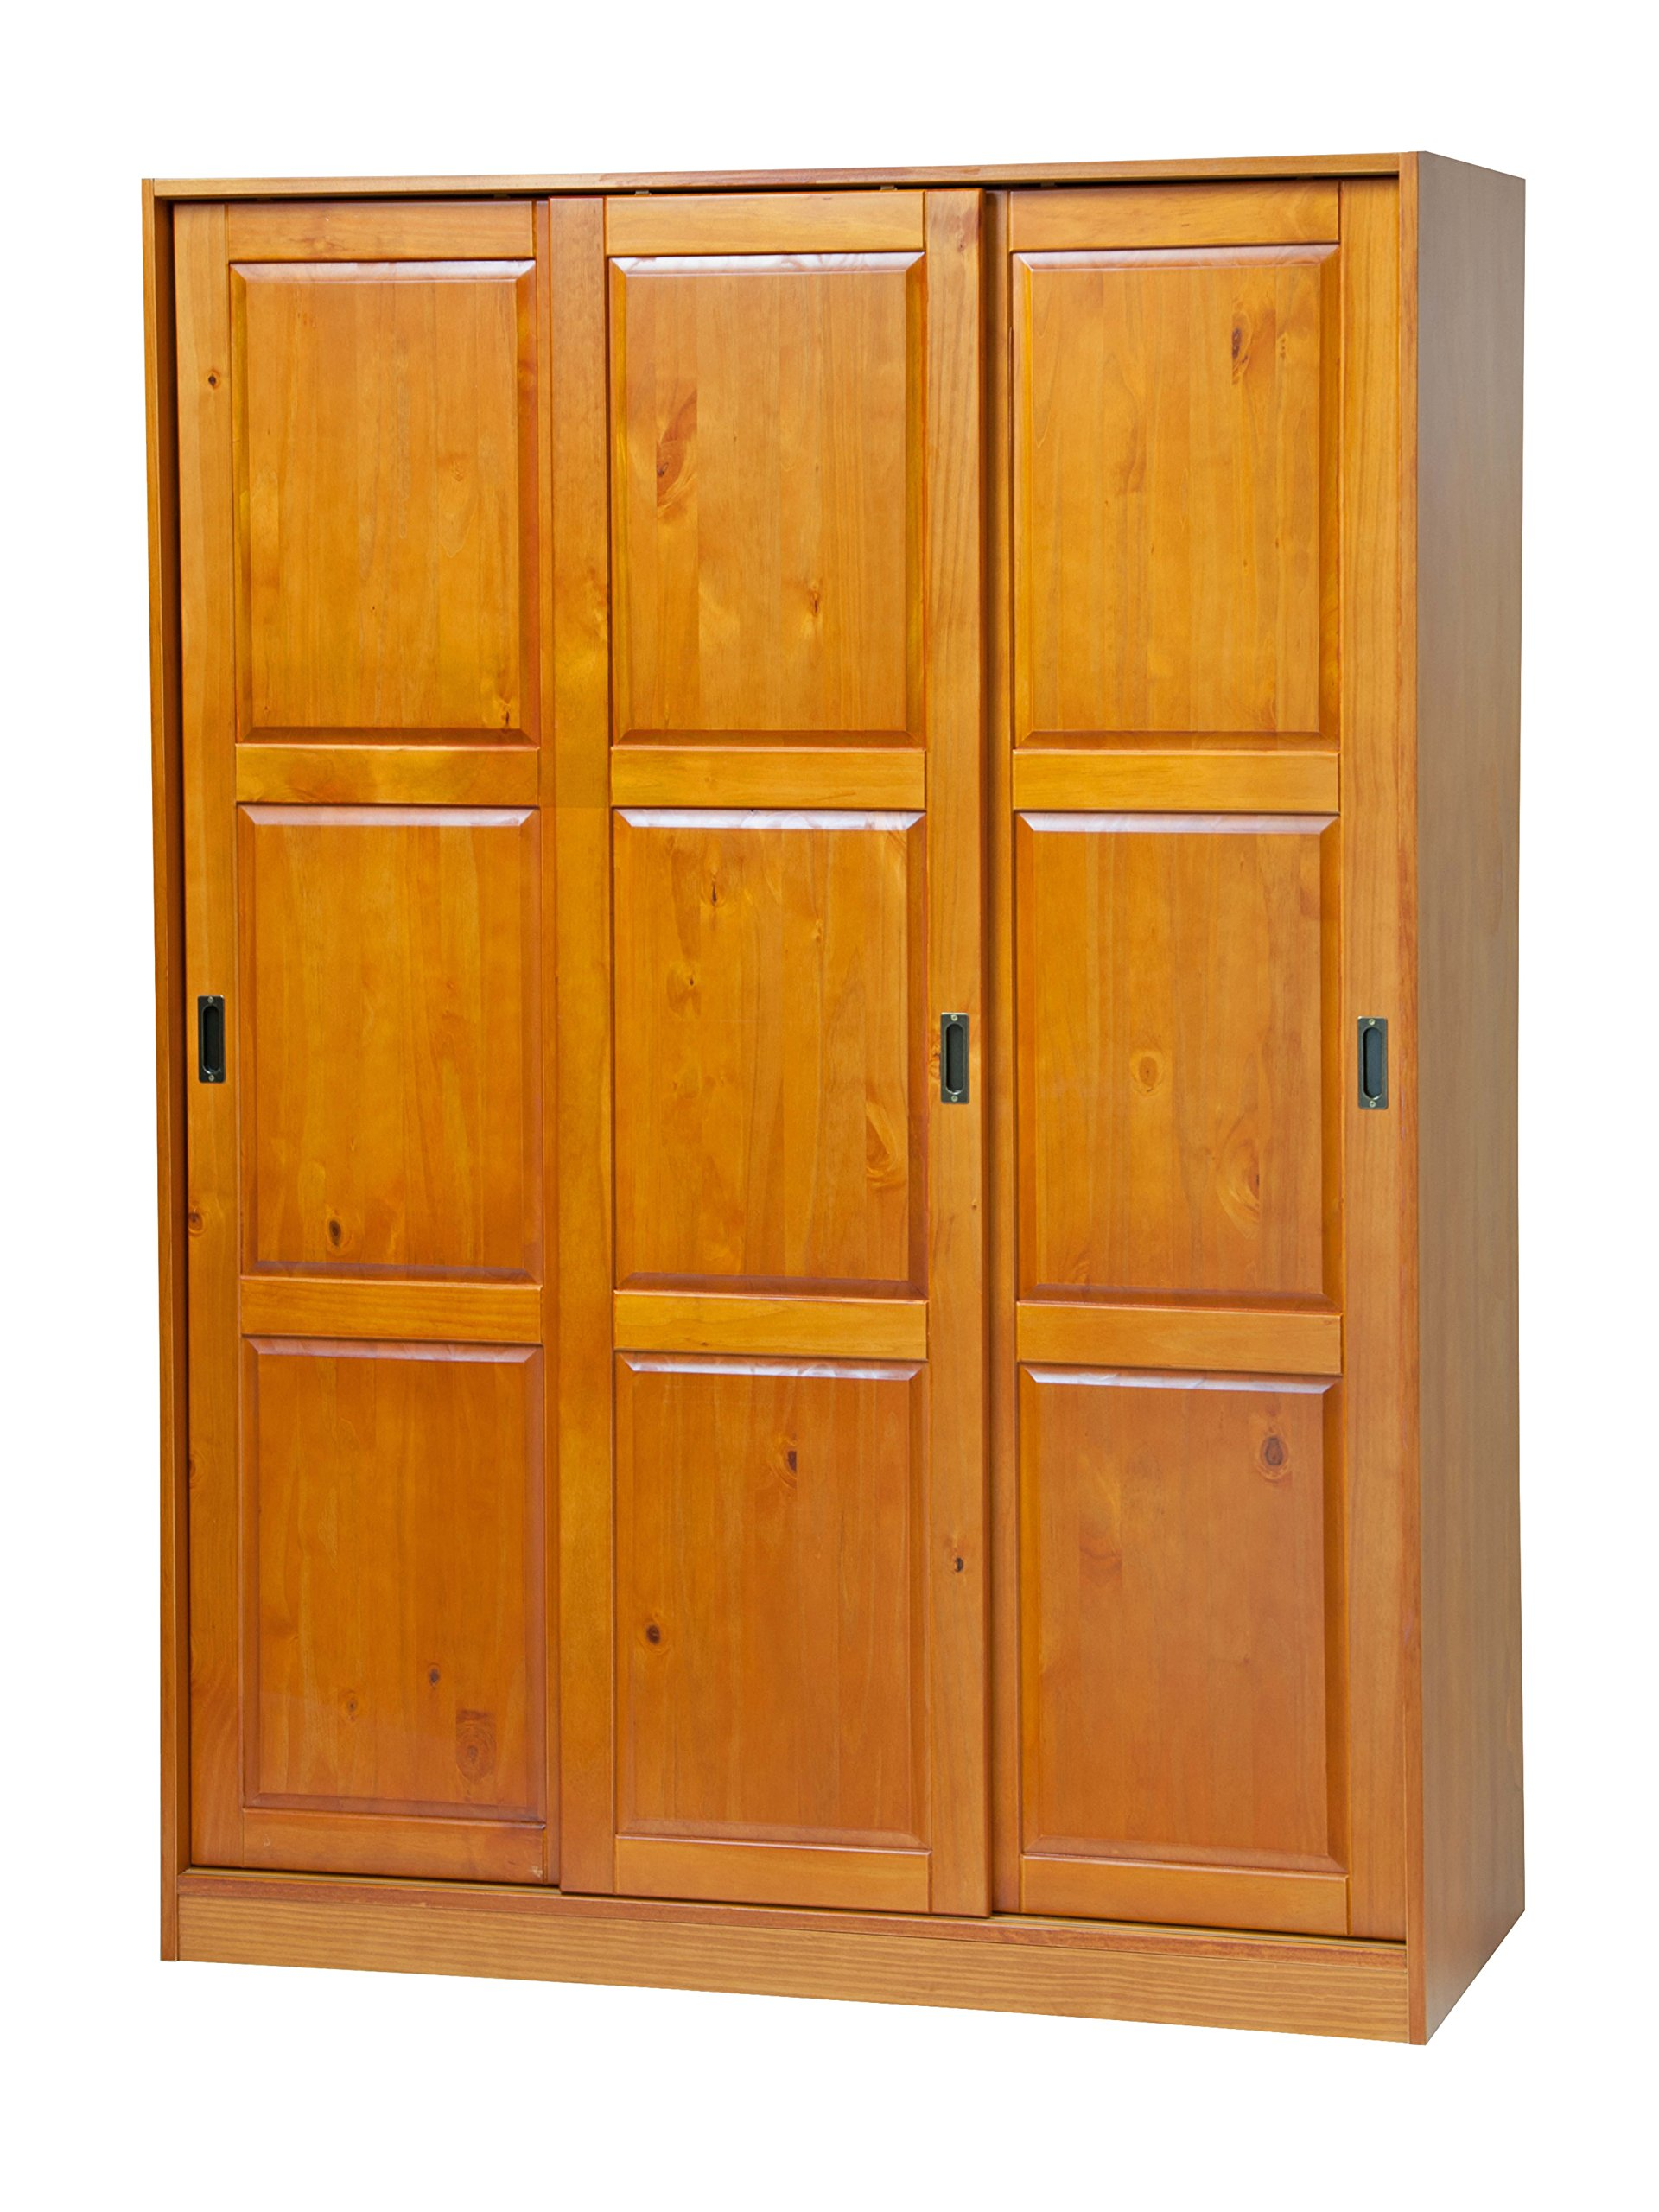 100% Solid Wood 3-Sliding Door Wardrobe/Armoire/Closet or Mudroom Storage by Palace Imports, Honey Pine. 1 Large/4 Small Shelves, 1 Rod Included. Extra Large Shelves Sold Separately. Requires Assembly by Palace Imports